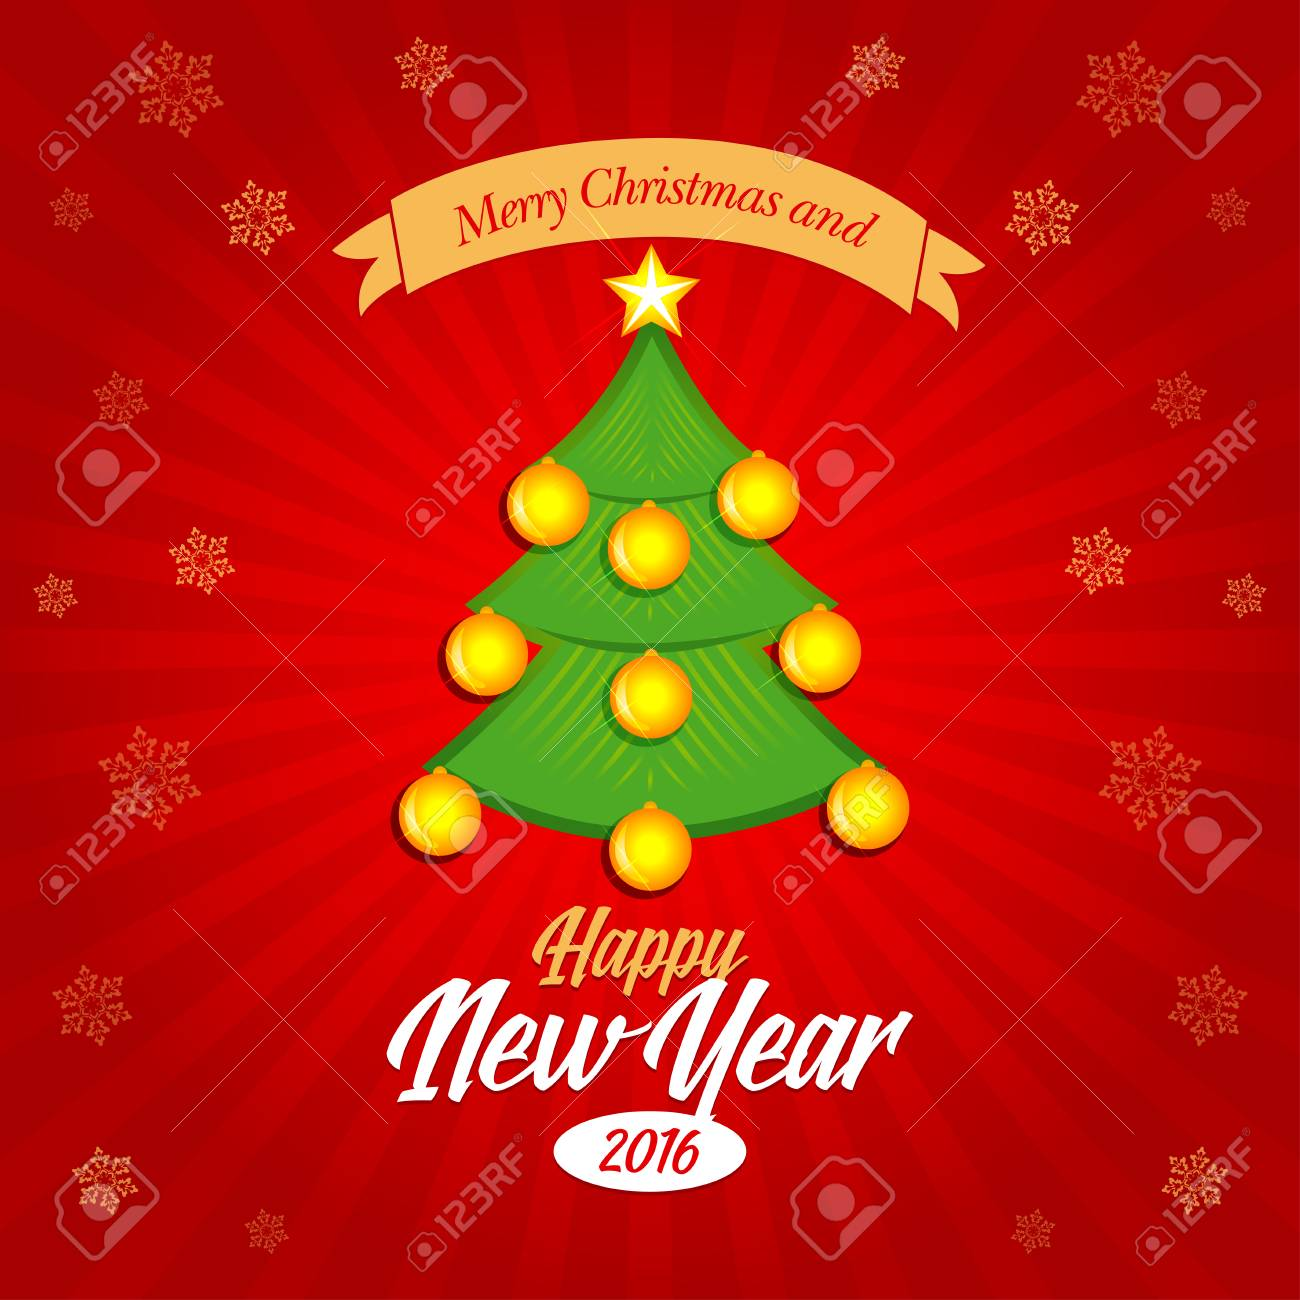 Happy New Year 2016 And Merry Christmas Banner Postcard Christmas